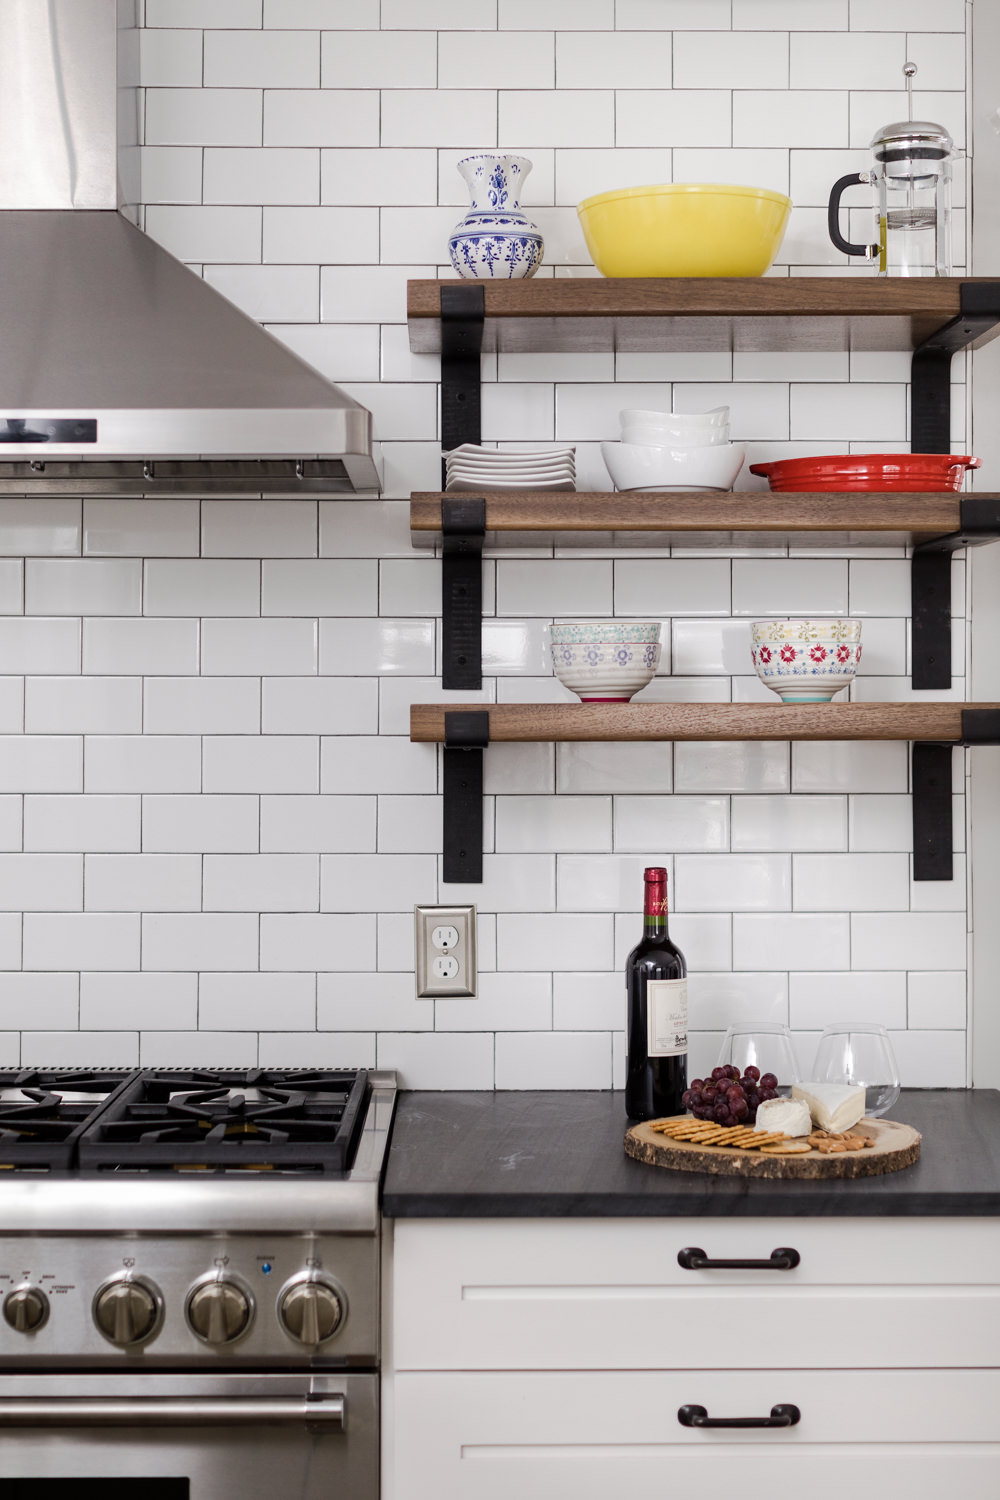 Photo of a white subway tiled kitchen taken by Stina Booth in Burlington Vermont